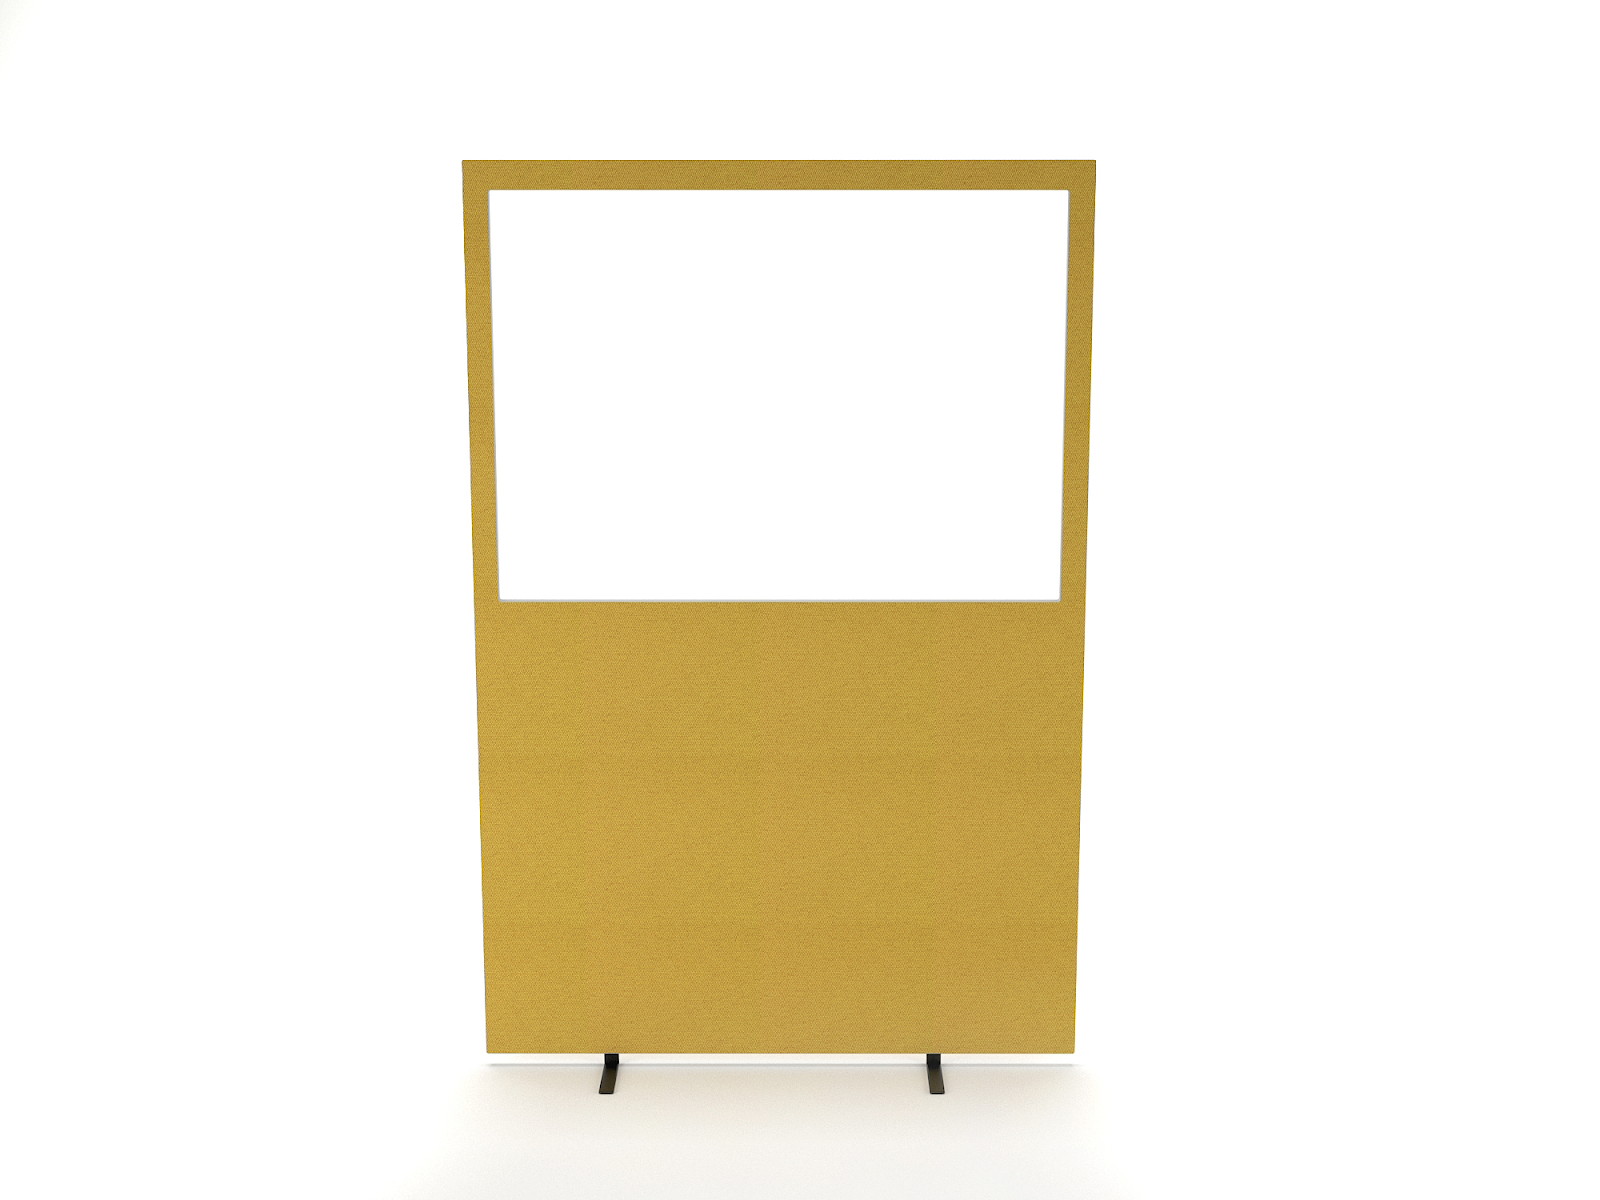 Impulse Plus Perspex Half Vision Partition Office Screen 1200 / 1600 with free standing feet, upholstered in beige fabric and including a clear acrylic glazed panel in the top half that creates privacy and allows a view of the surroundings.